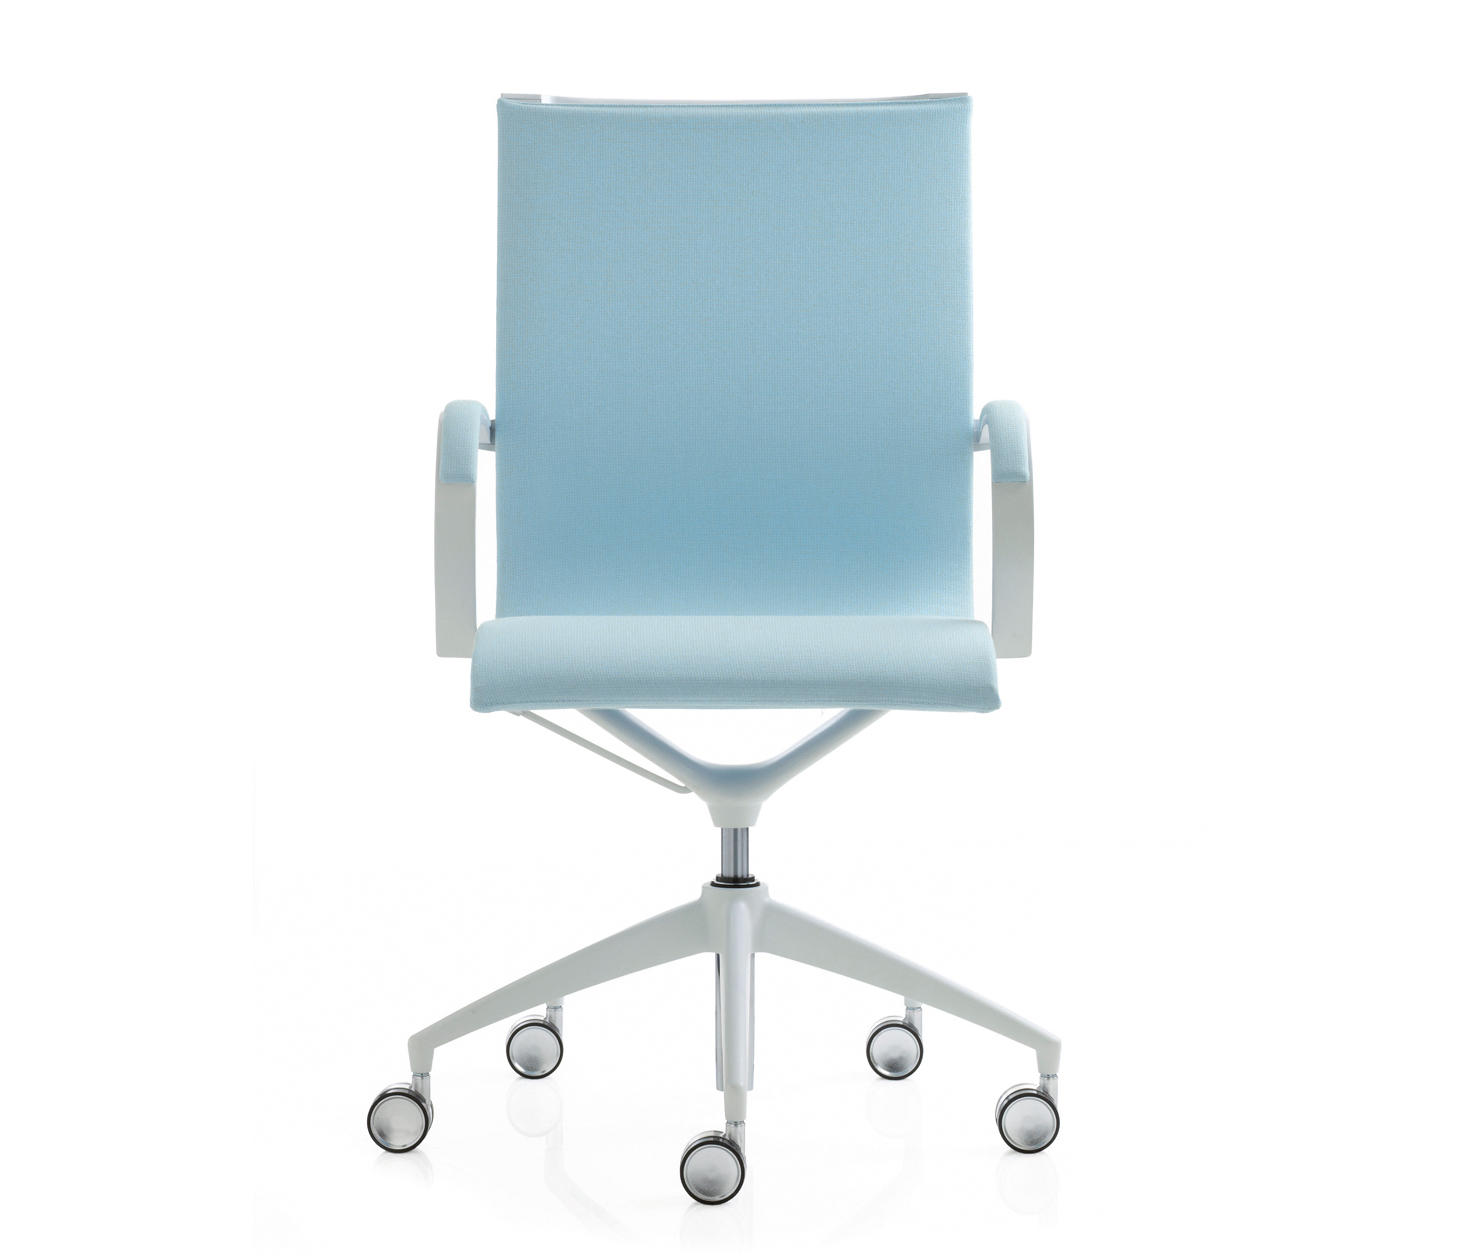 swivel chair em portugues desk ergonomic 202 light chaises de travail emmegi architonic